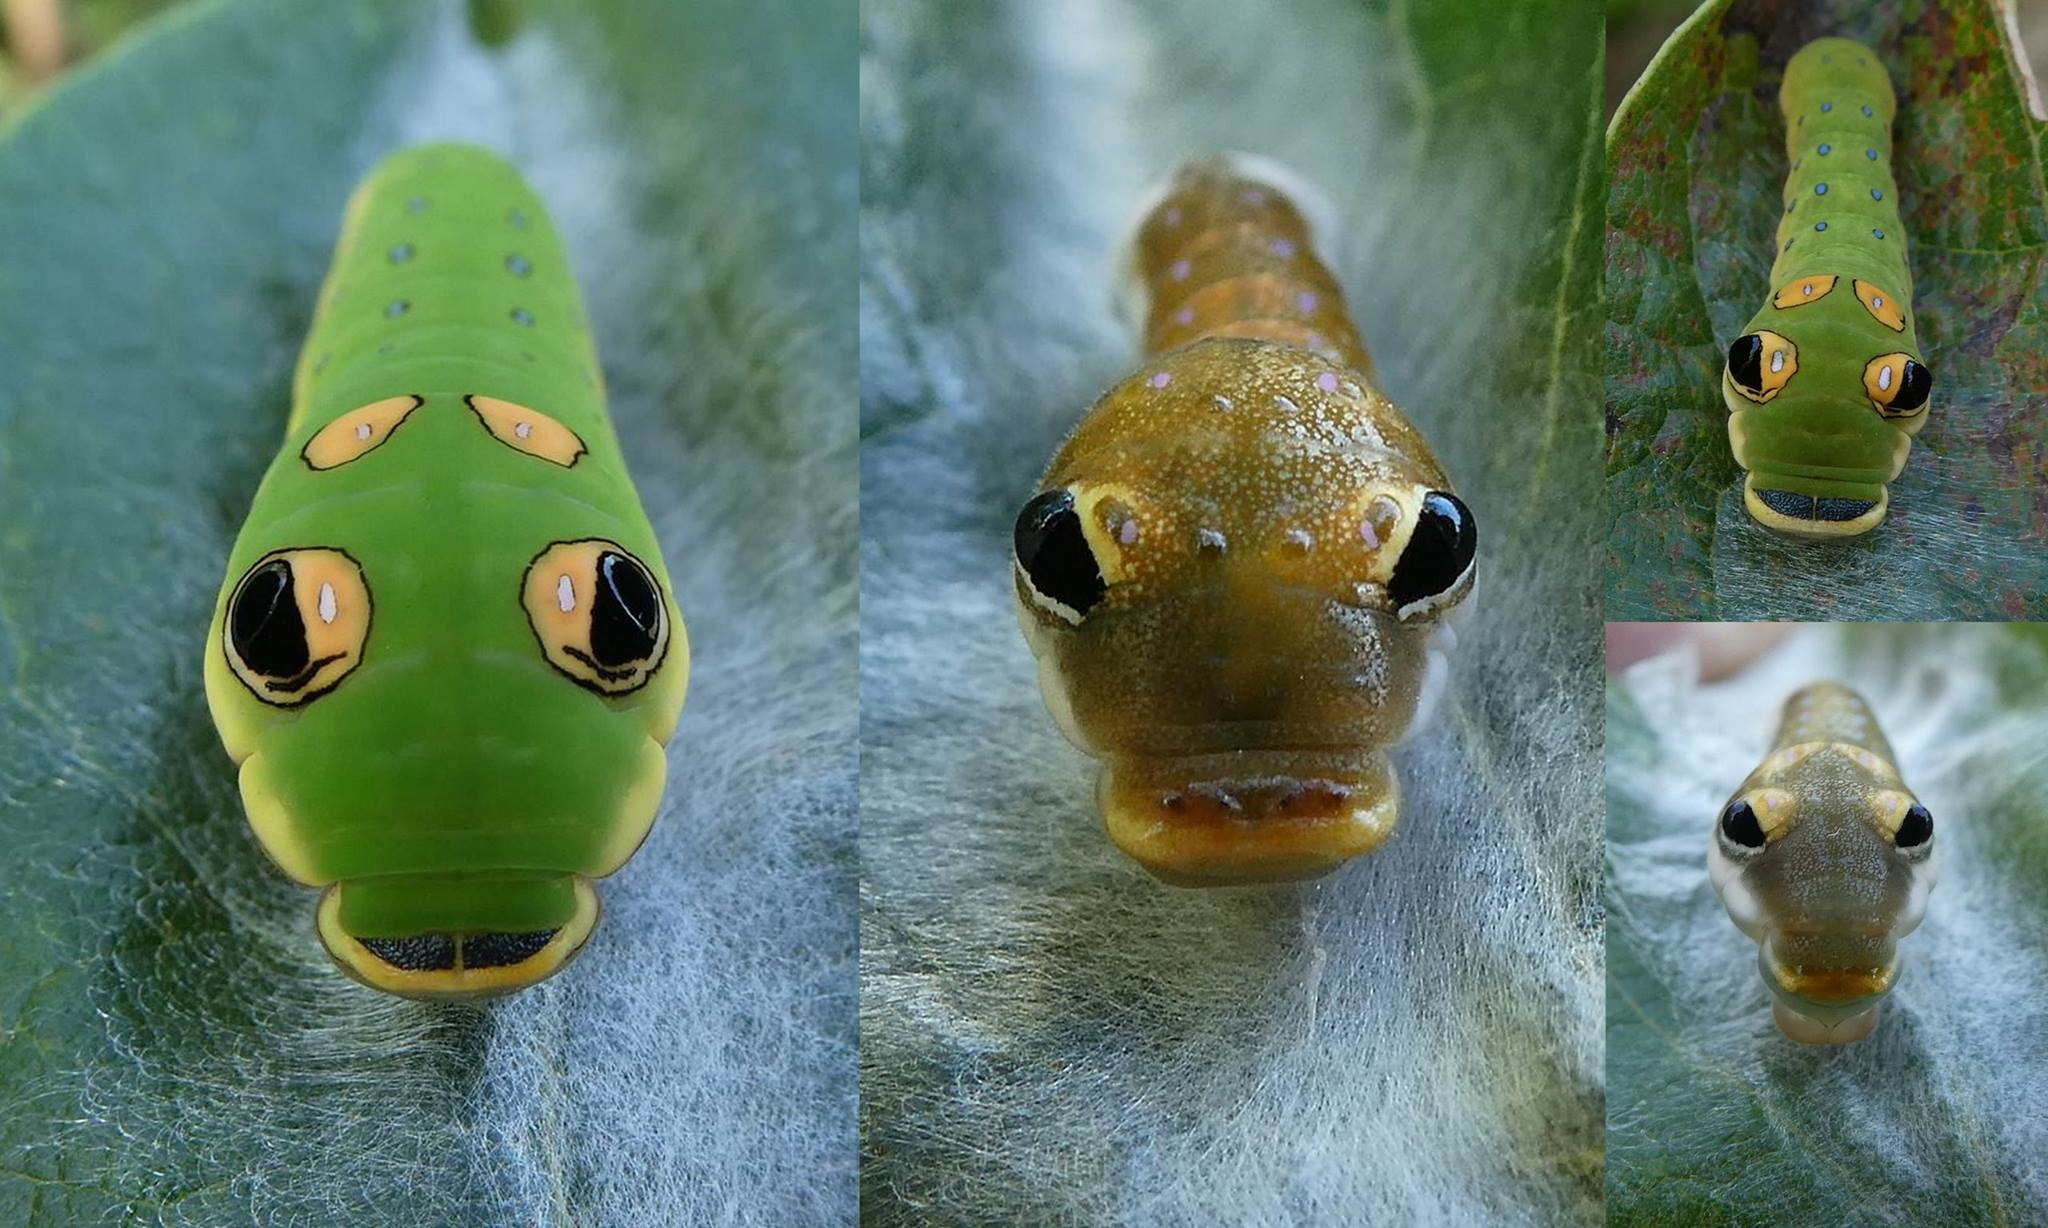 Spicebush swallowtail caterpillar photos shared with The Naturalist's Notebook by David Moskowitz